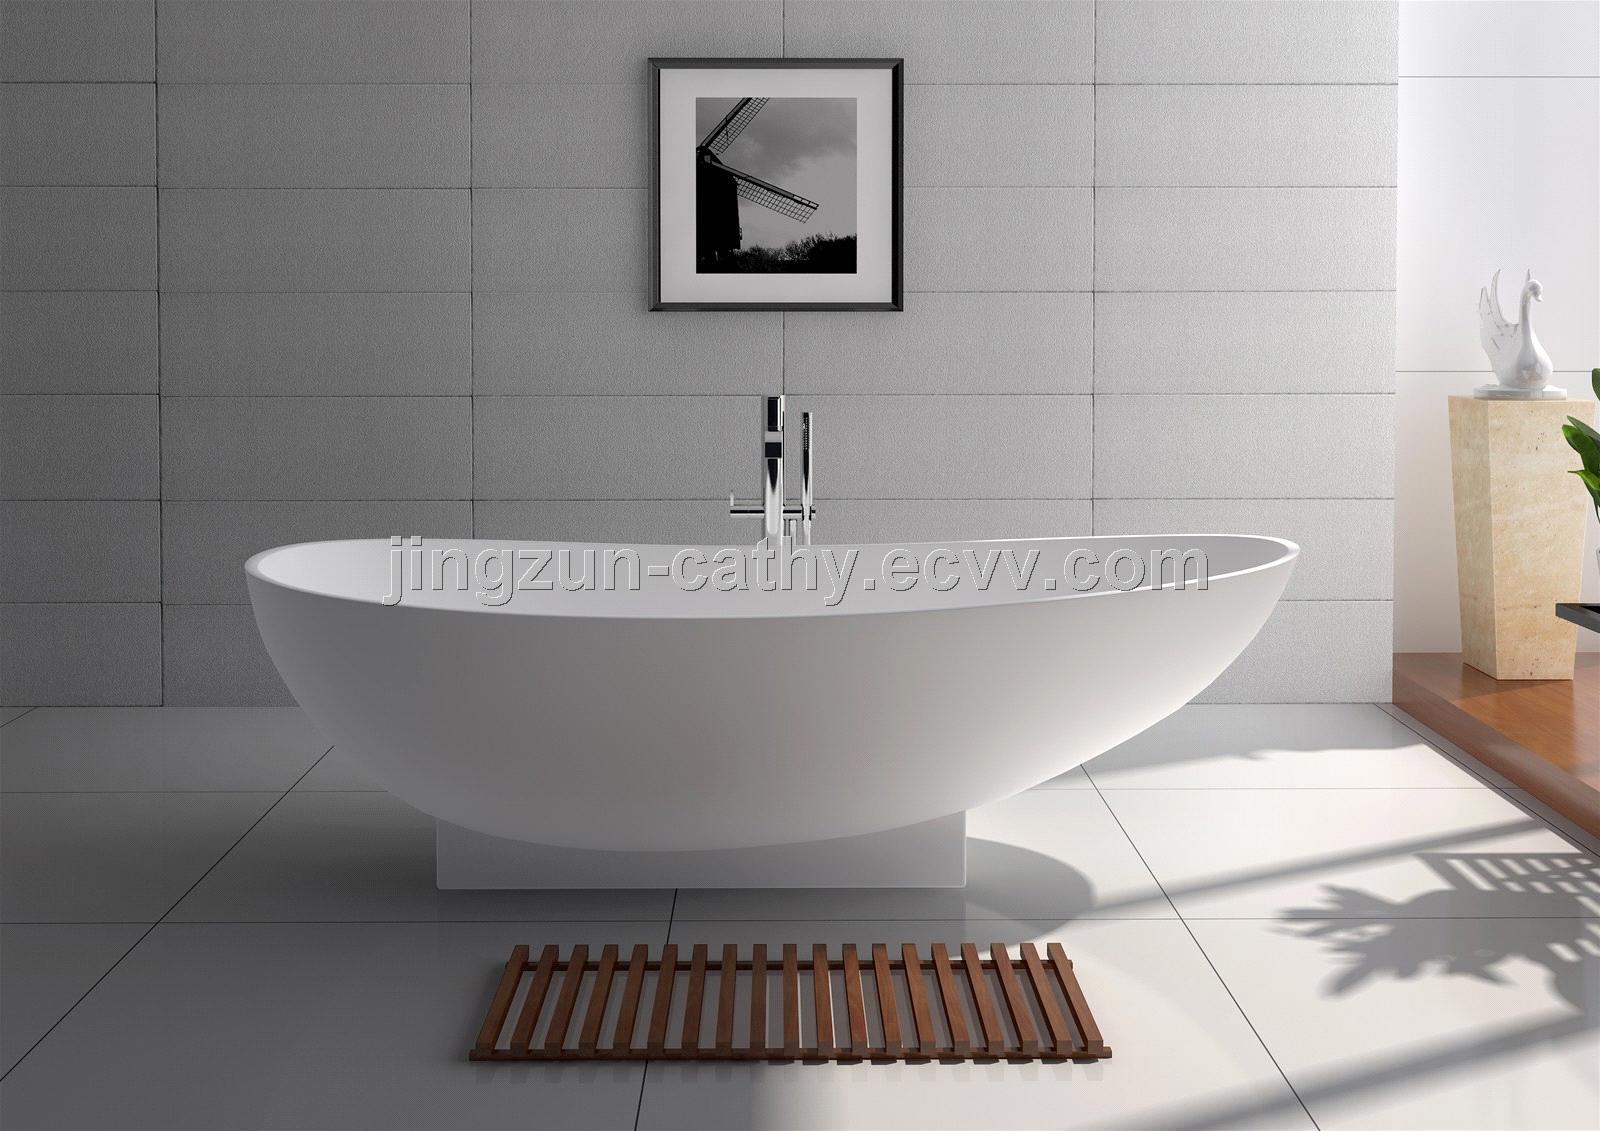 Classical Freestanding Artificial Stone Bathroom Mineral Bathtub/ solid surface bathtub -JZ8604